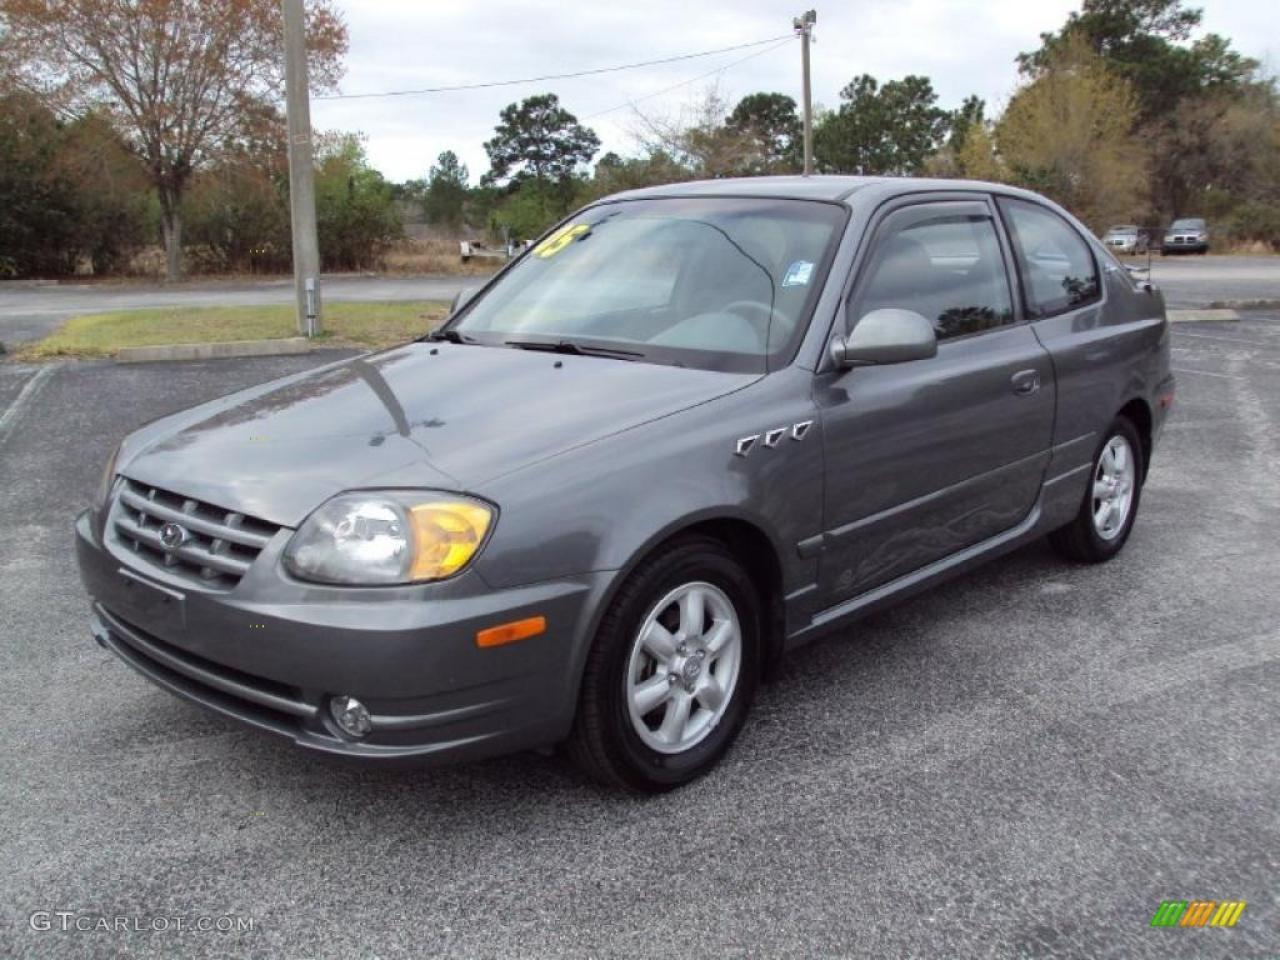 2005 hyundai accent information and photos zombiedrive. Black Bedroom Furniture Sets. Home Design Ideas